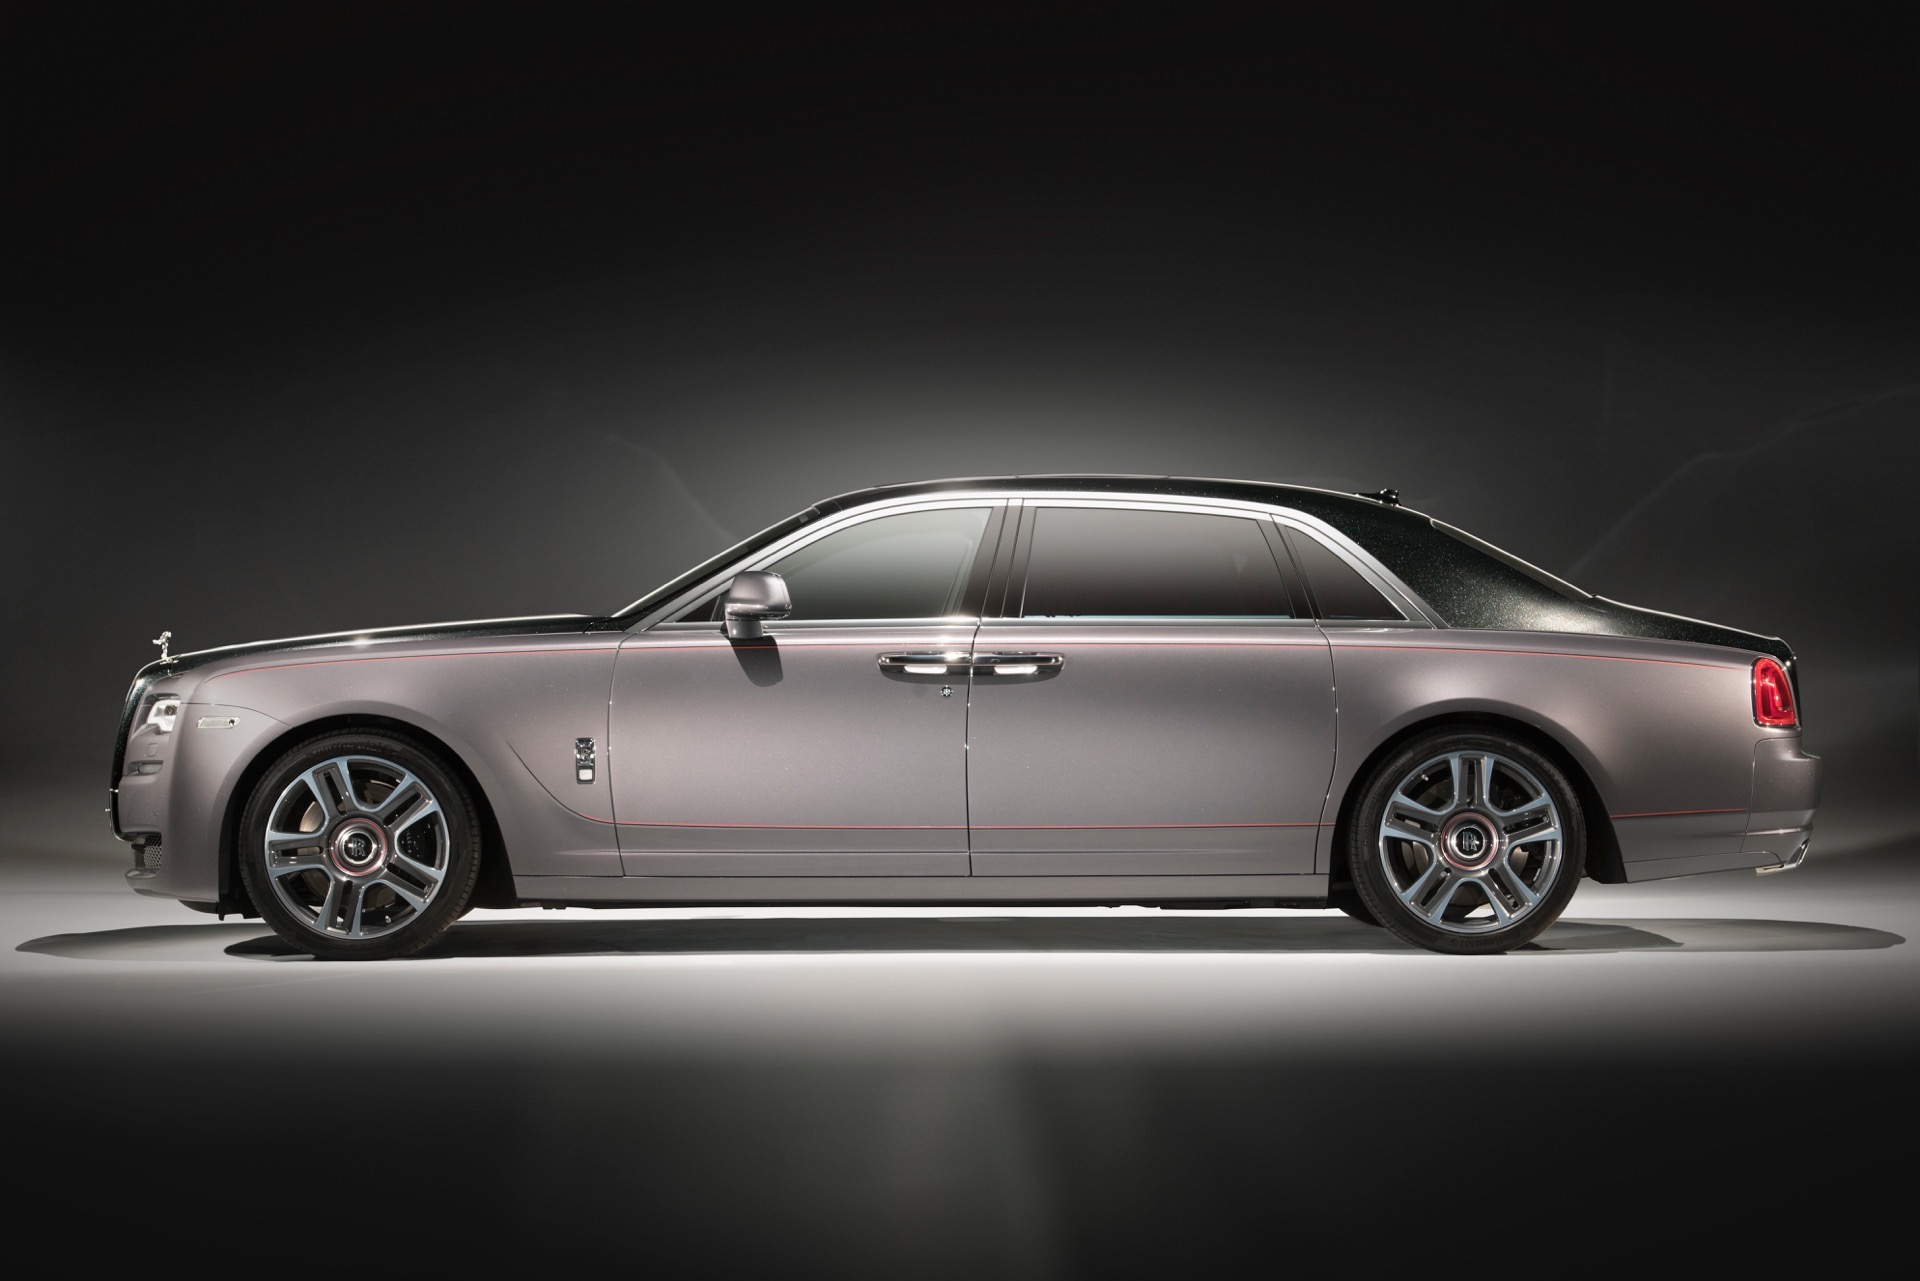 2020 Rolls Royce Ghost Be Lighter And Possibly All Wheel Drive